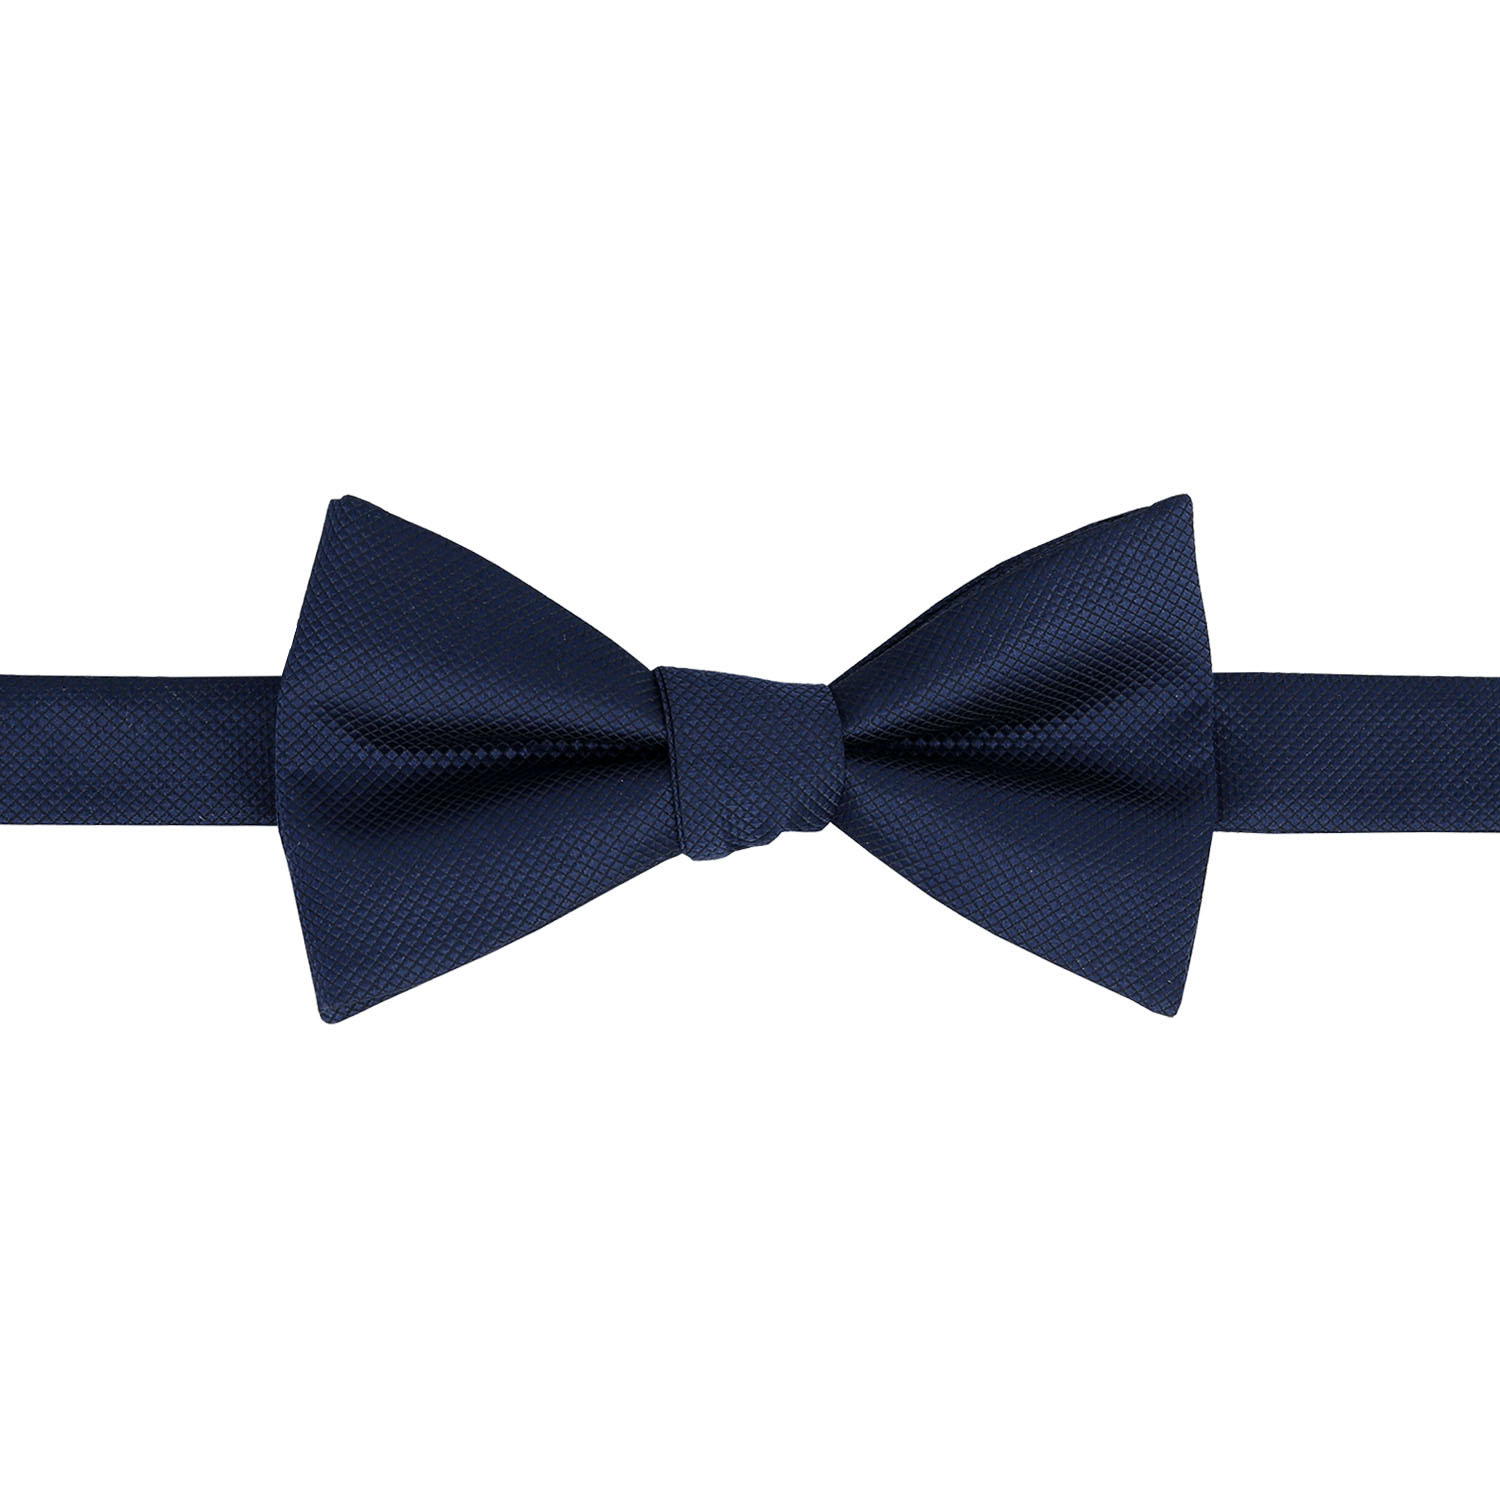 navy blue solid check self tie thistle bow tie